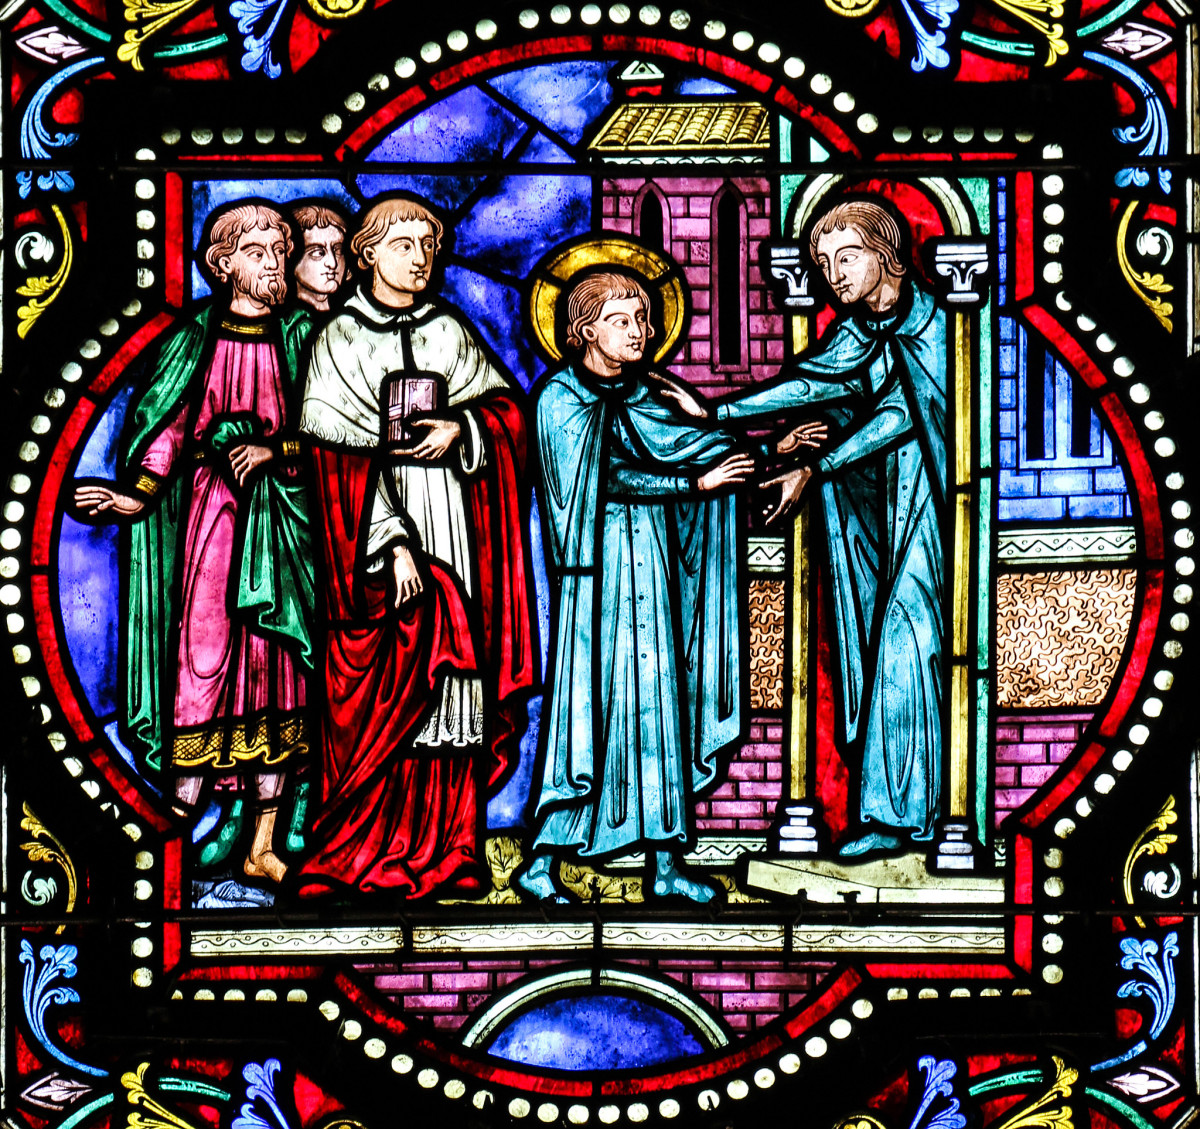 A beautiful stained glass from Lille Cathedral, depicting St. Aloysius' entrance into the Jesuit Order.